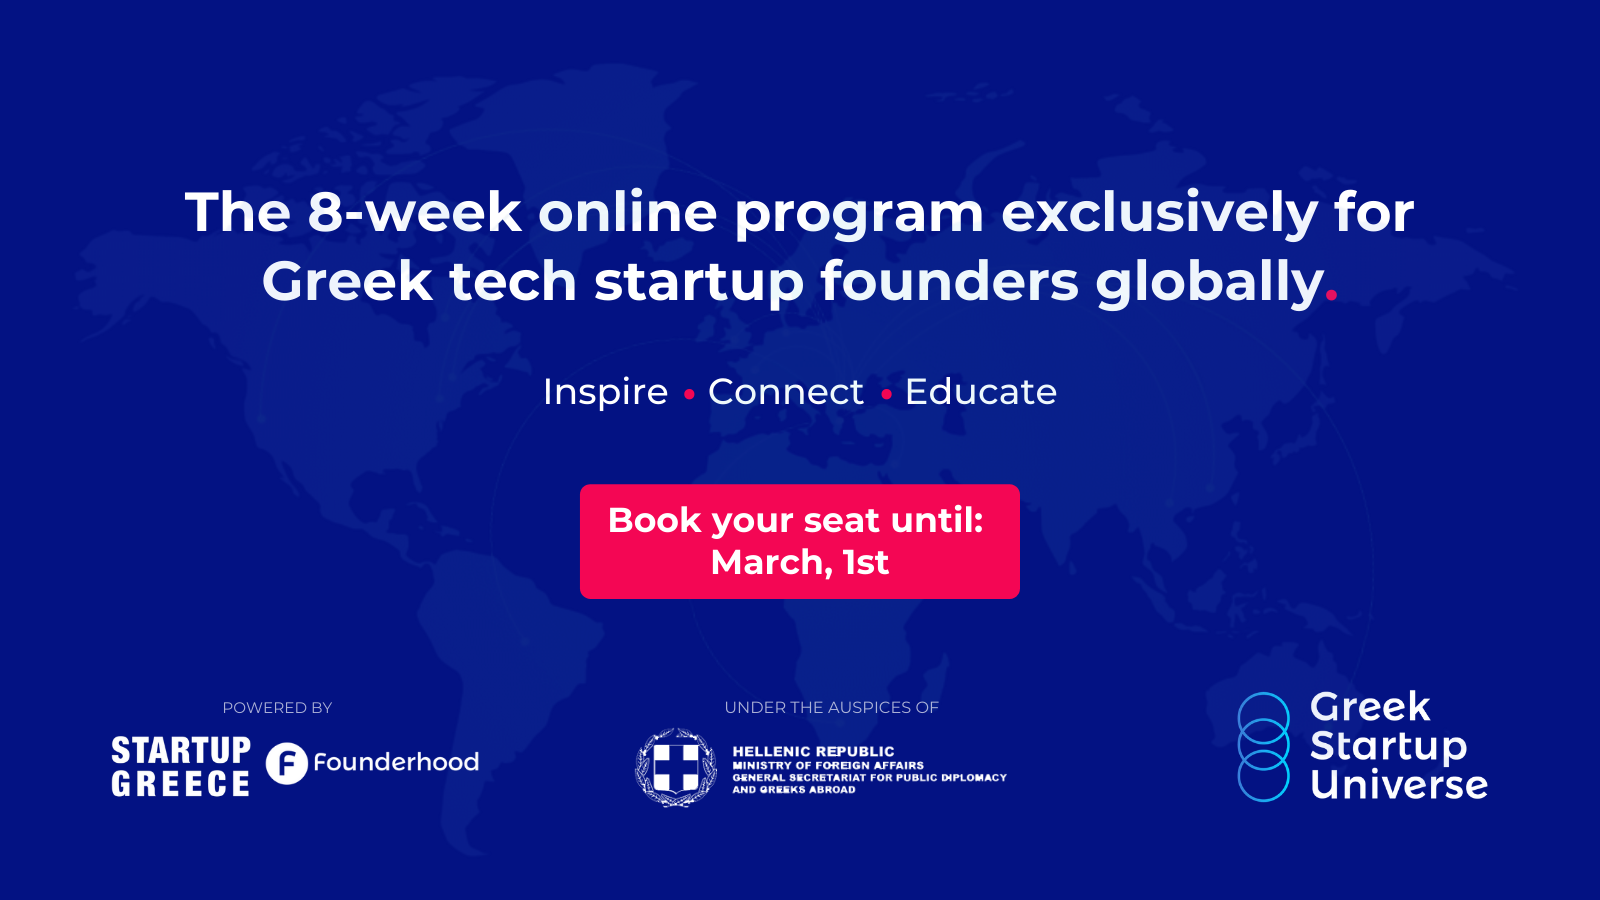 Greek Startup Universe: Η νέα πρωτοβουλία για tech early-stage ideas & startups, του Startup Greece σε συνεργασία με το Founderhood, είναι προ των πυλών!